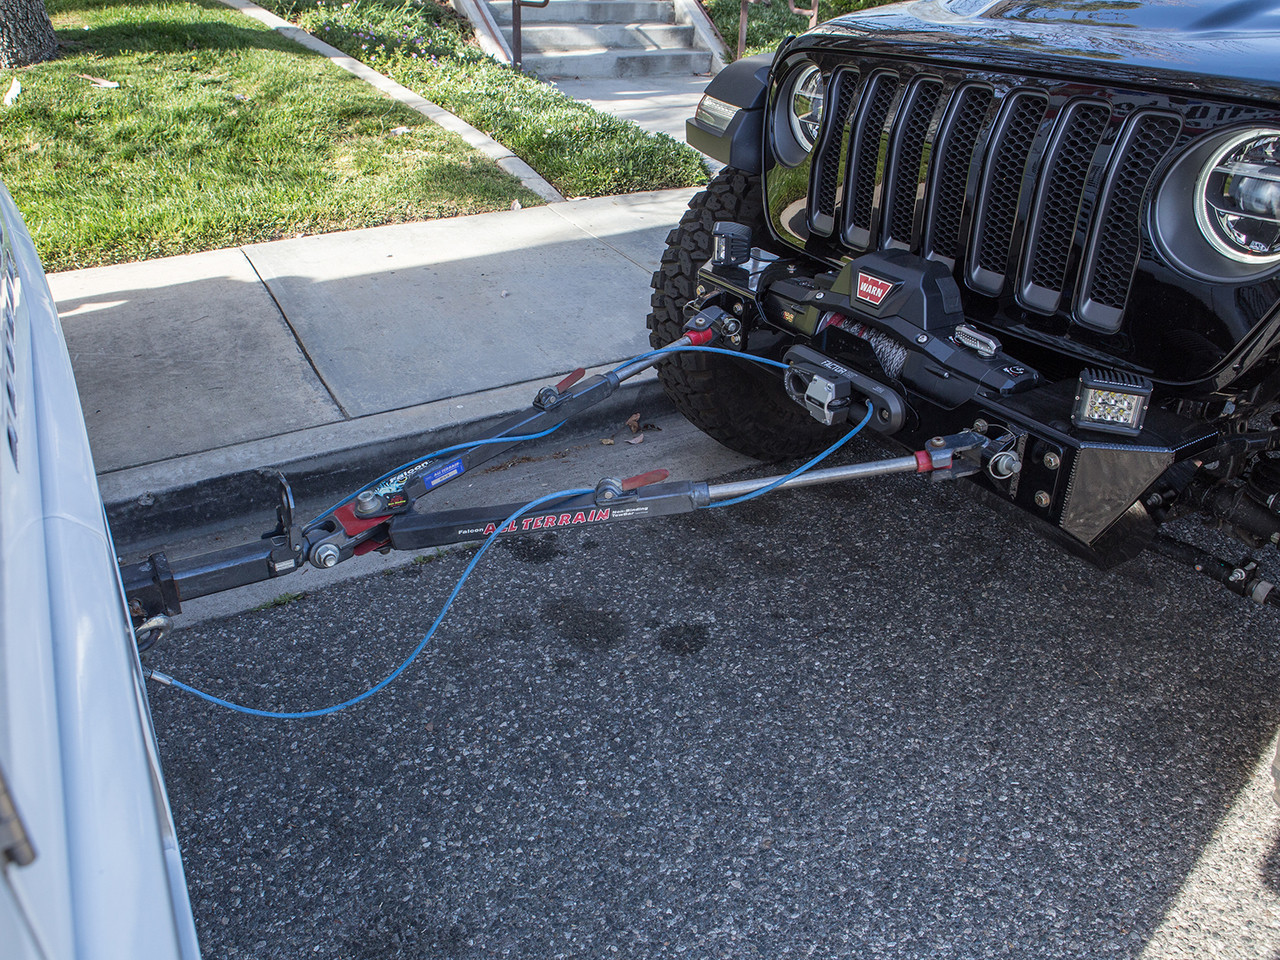 Flat tow compatible thanks to the heavy duty steel tow points.